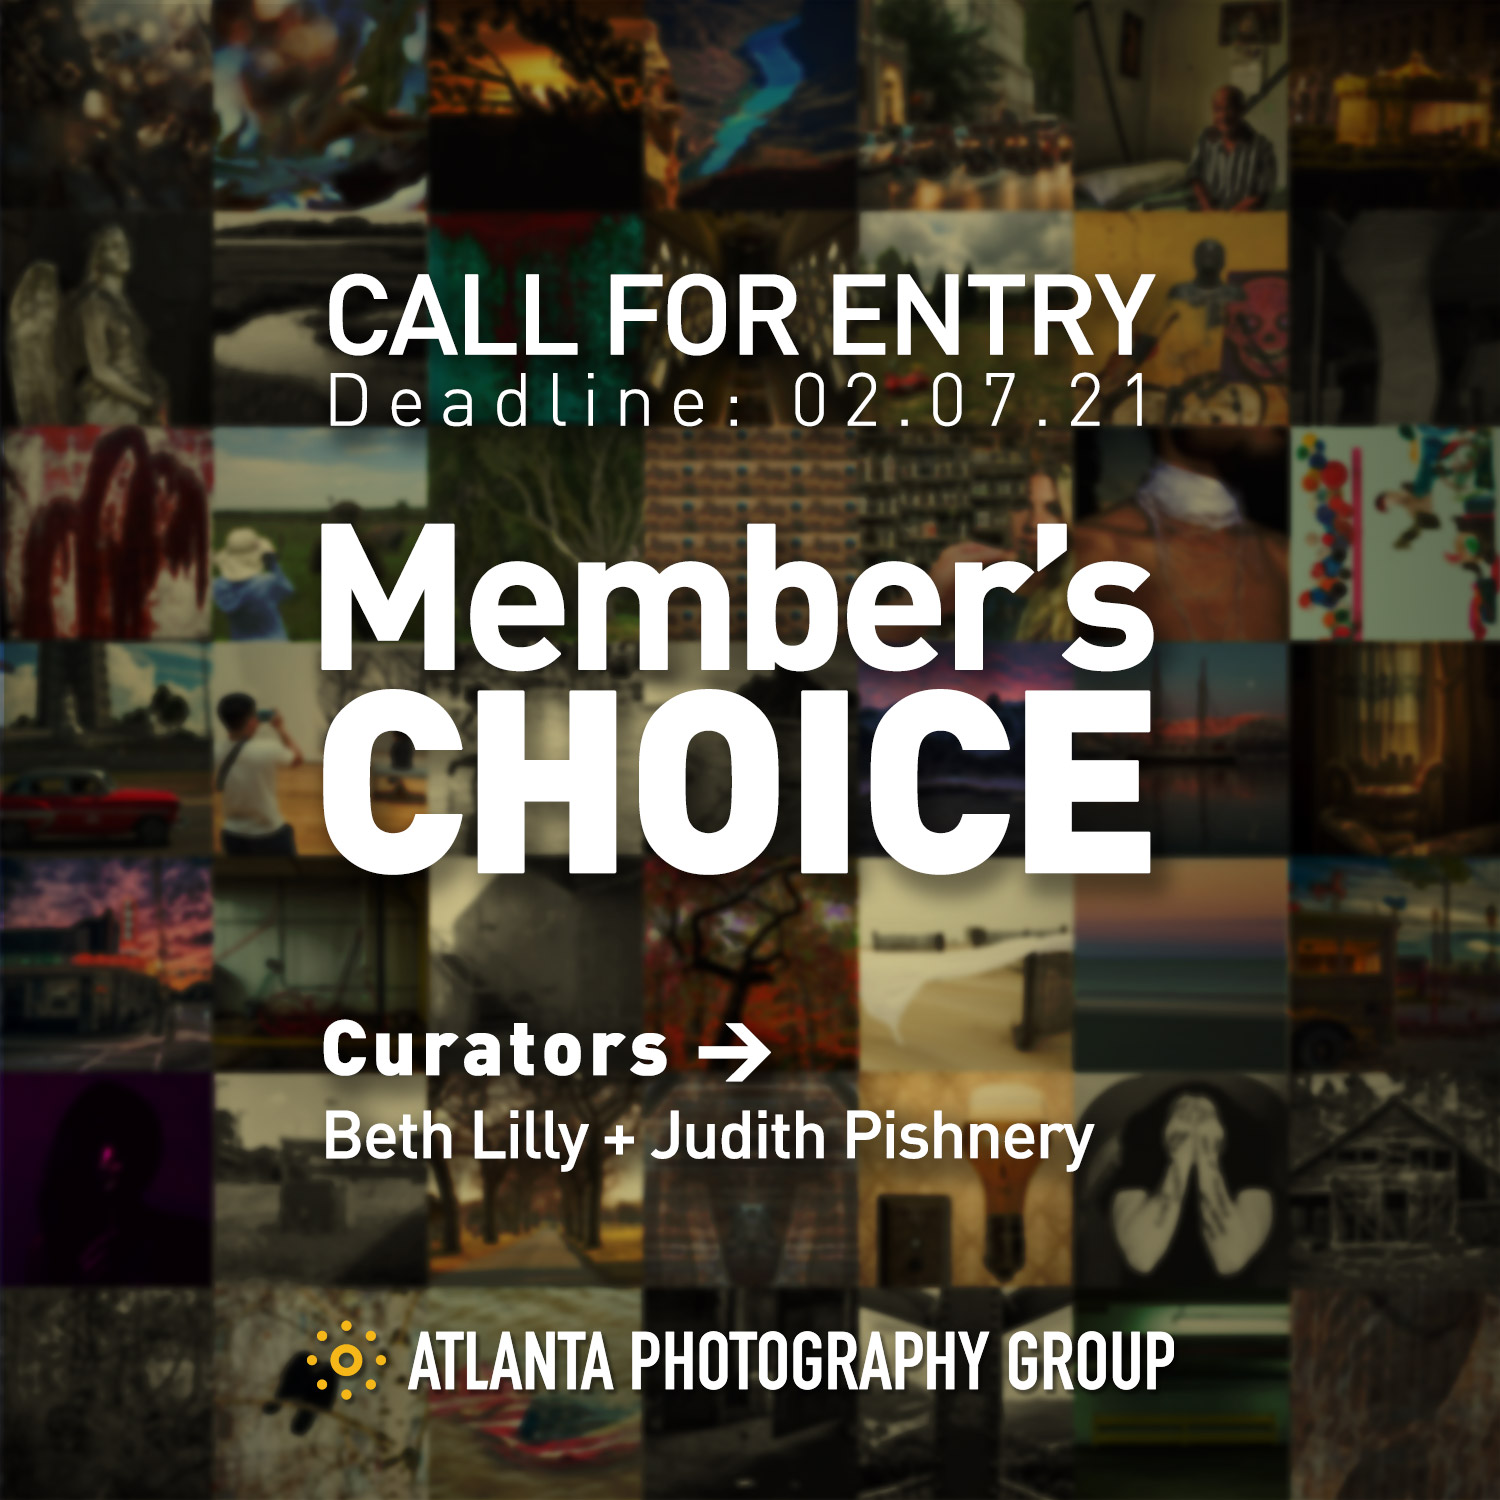 Call For Entry: Member's CHOICE